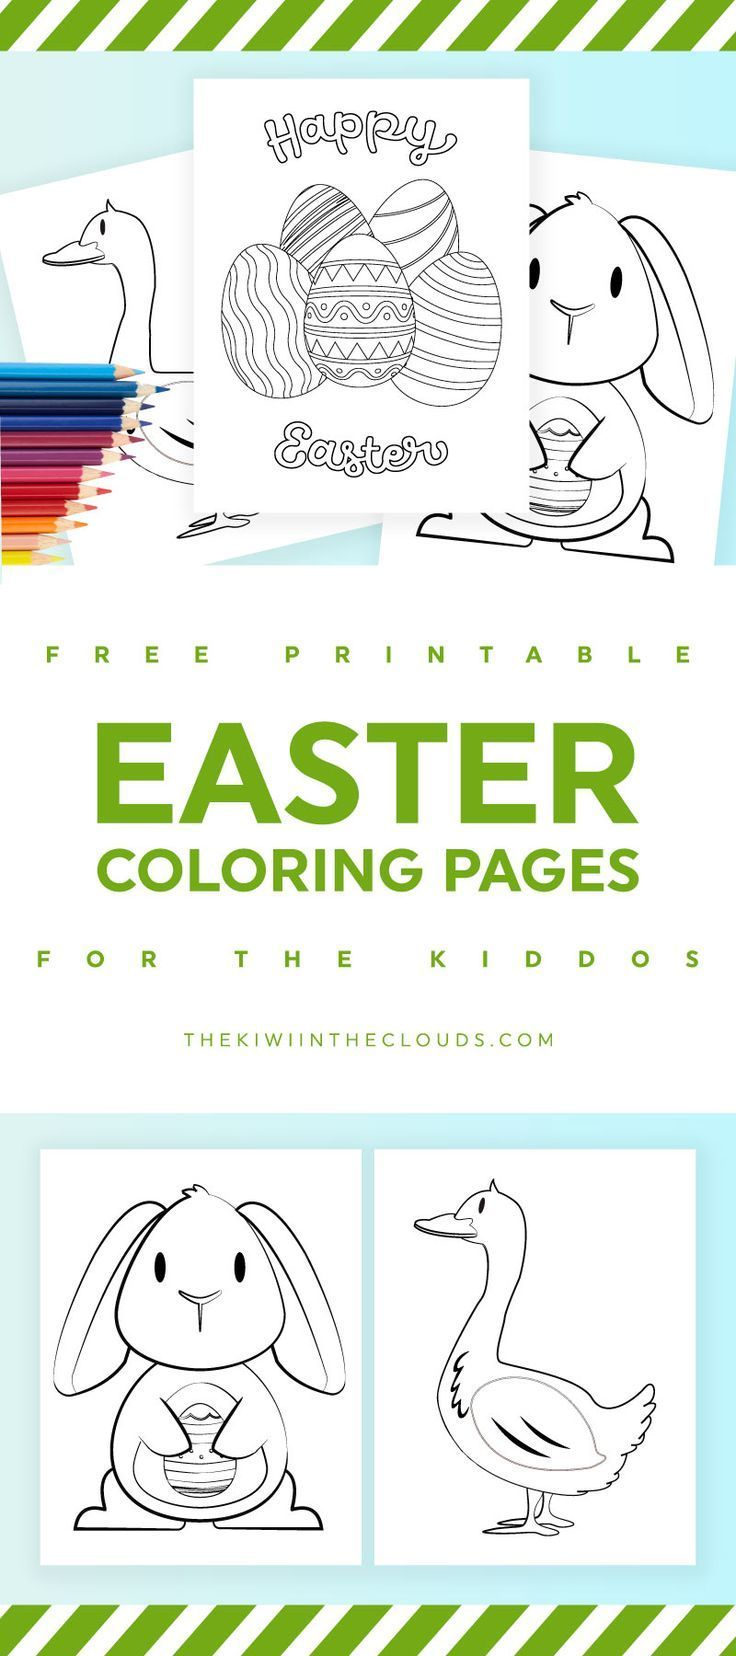 easter coloring pages for kids free printables kids activities - Free Printables Kids